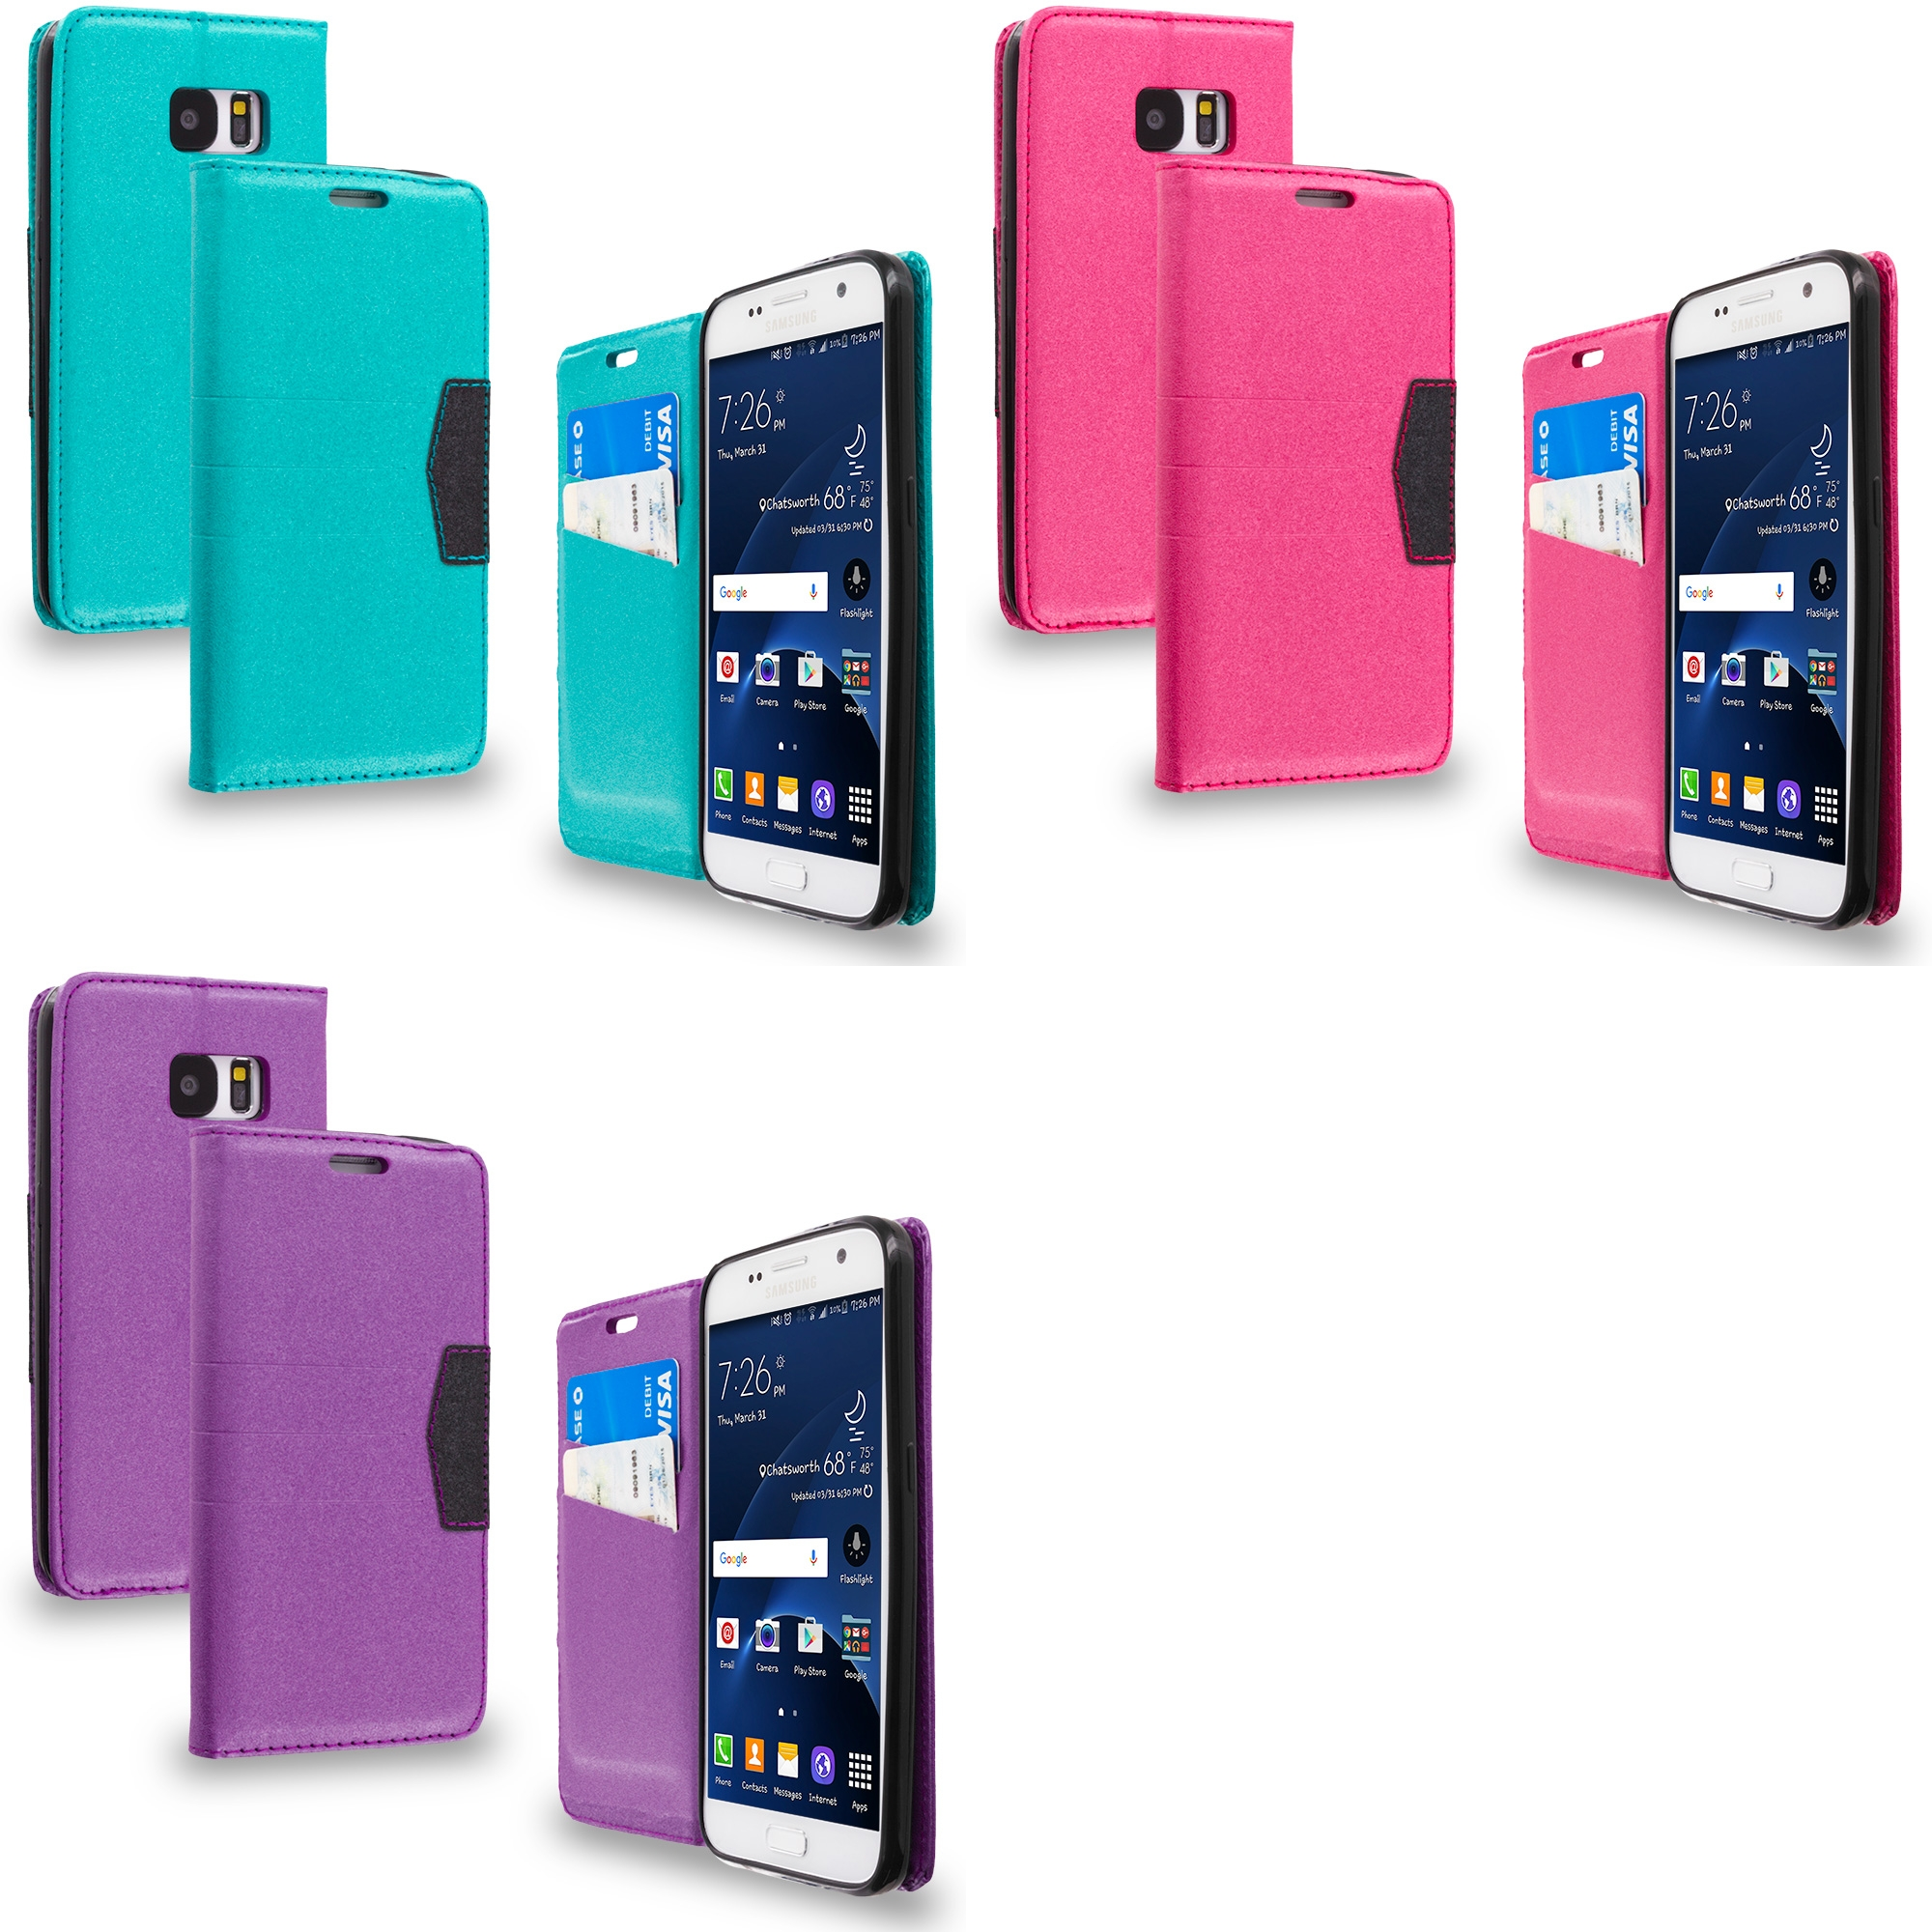 Samsung Galaxy S7 Combo Pack : Hot Pink Wallet Flip Leather Pouch Case Cover with ID Card Slots